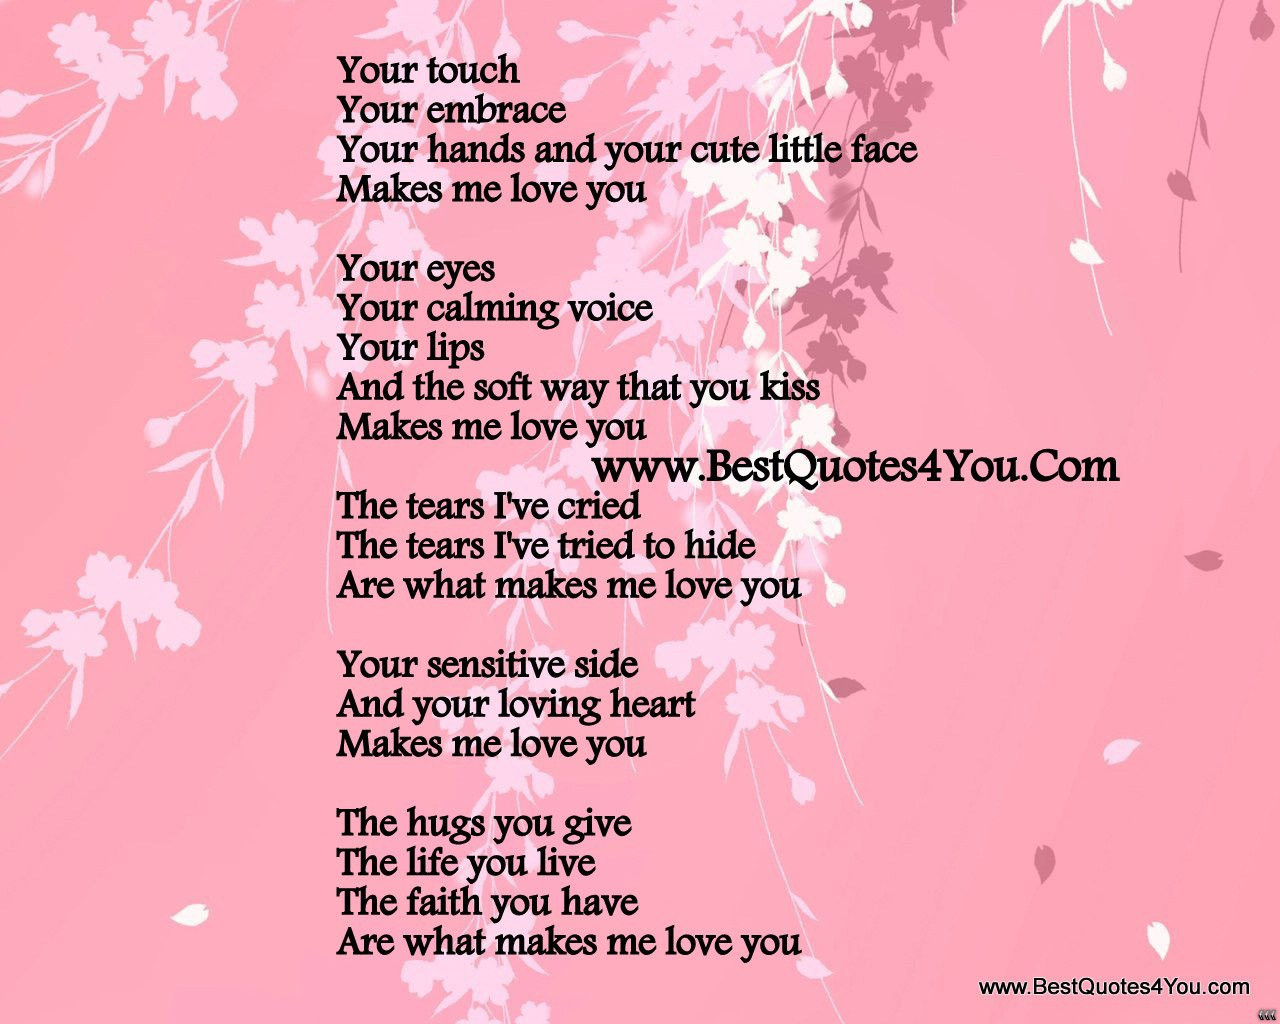 Heart Touching Poems | www.galleryhip.com - The Hippest Pics